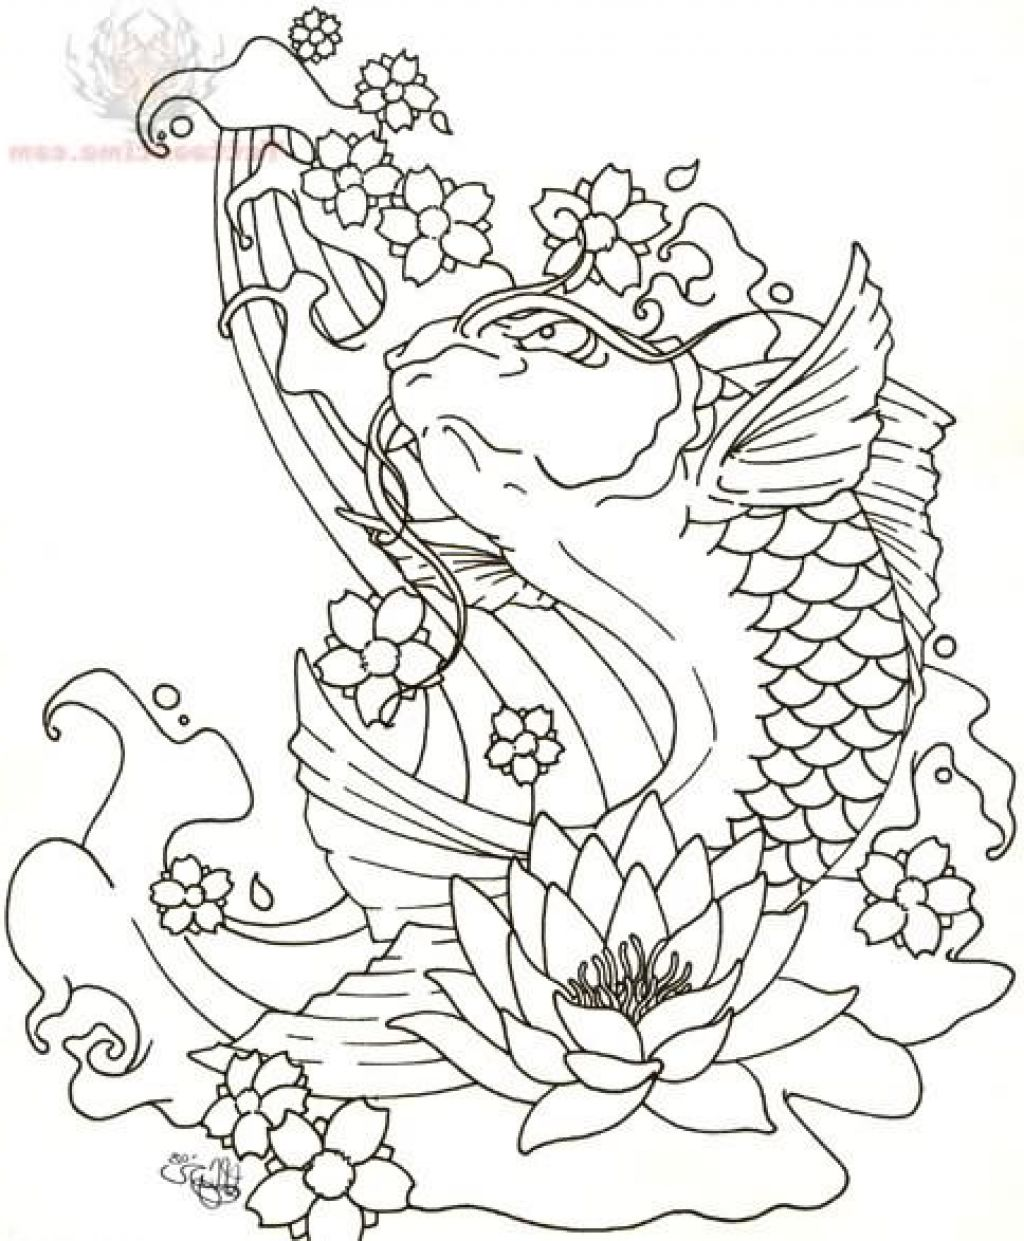 1024x1241 Japanese Koi Fish Tattoo Designs